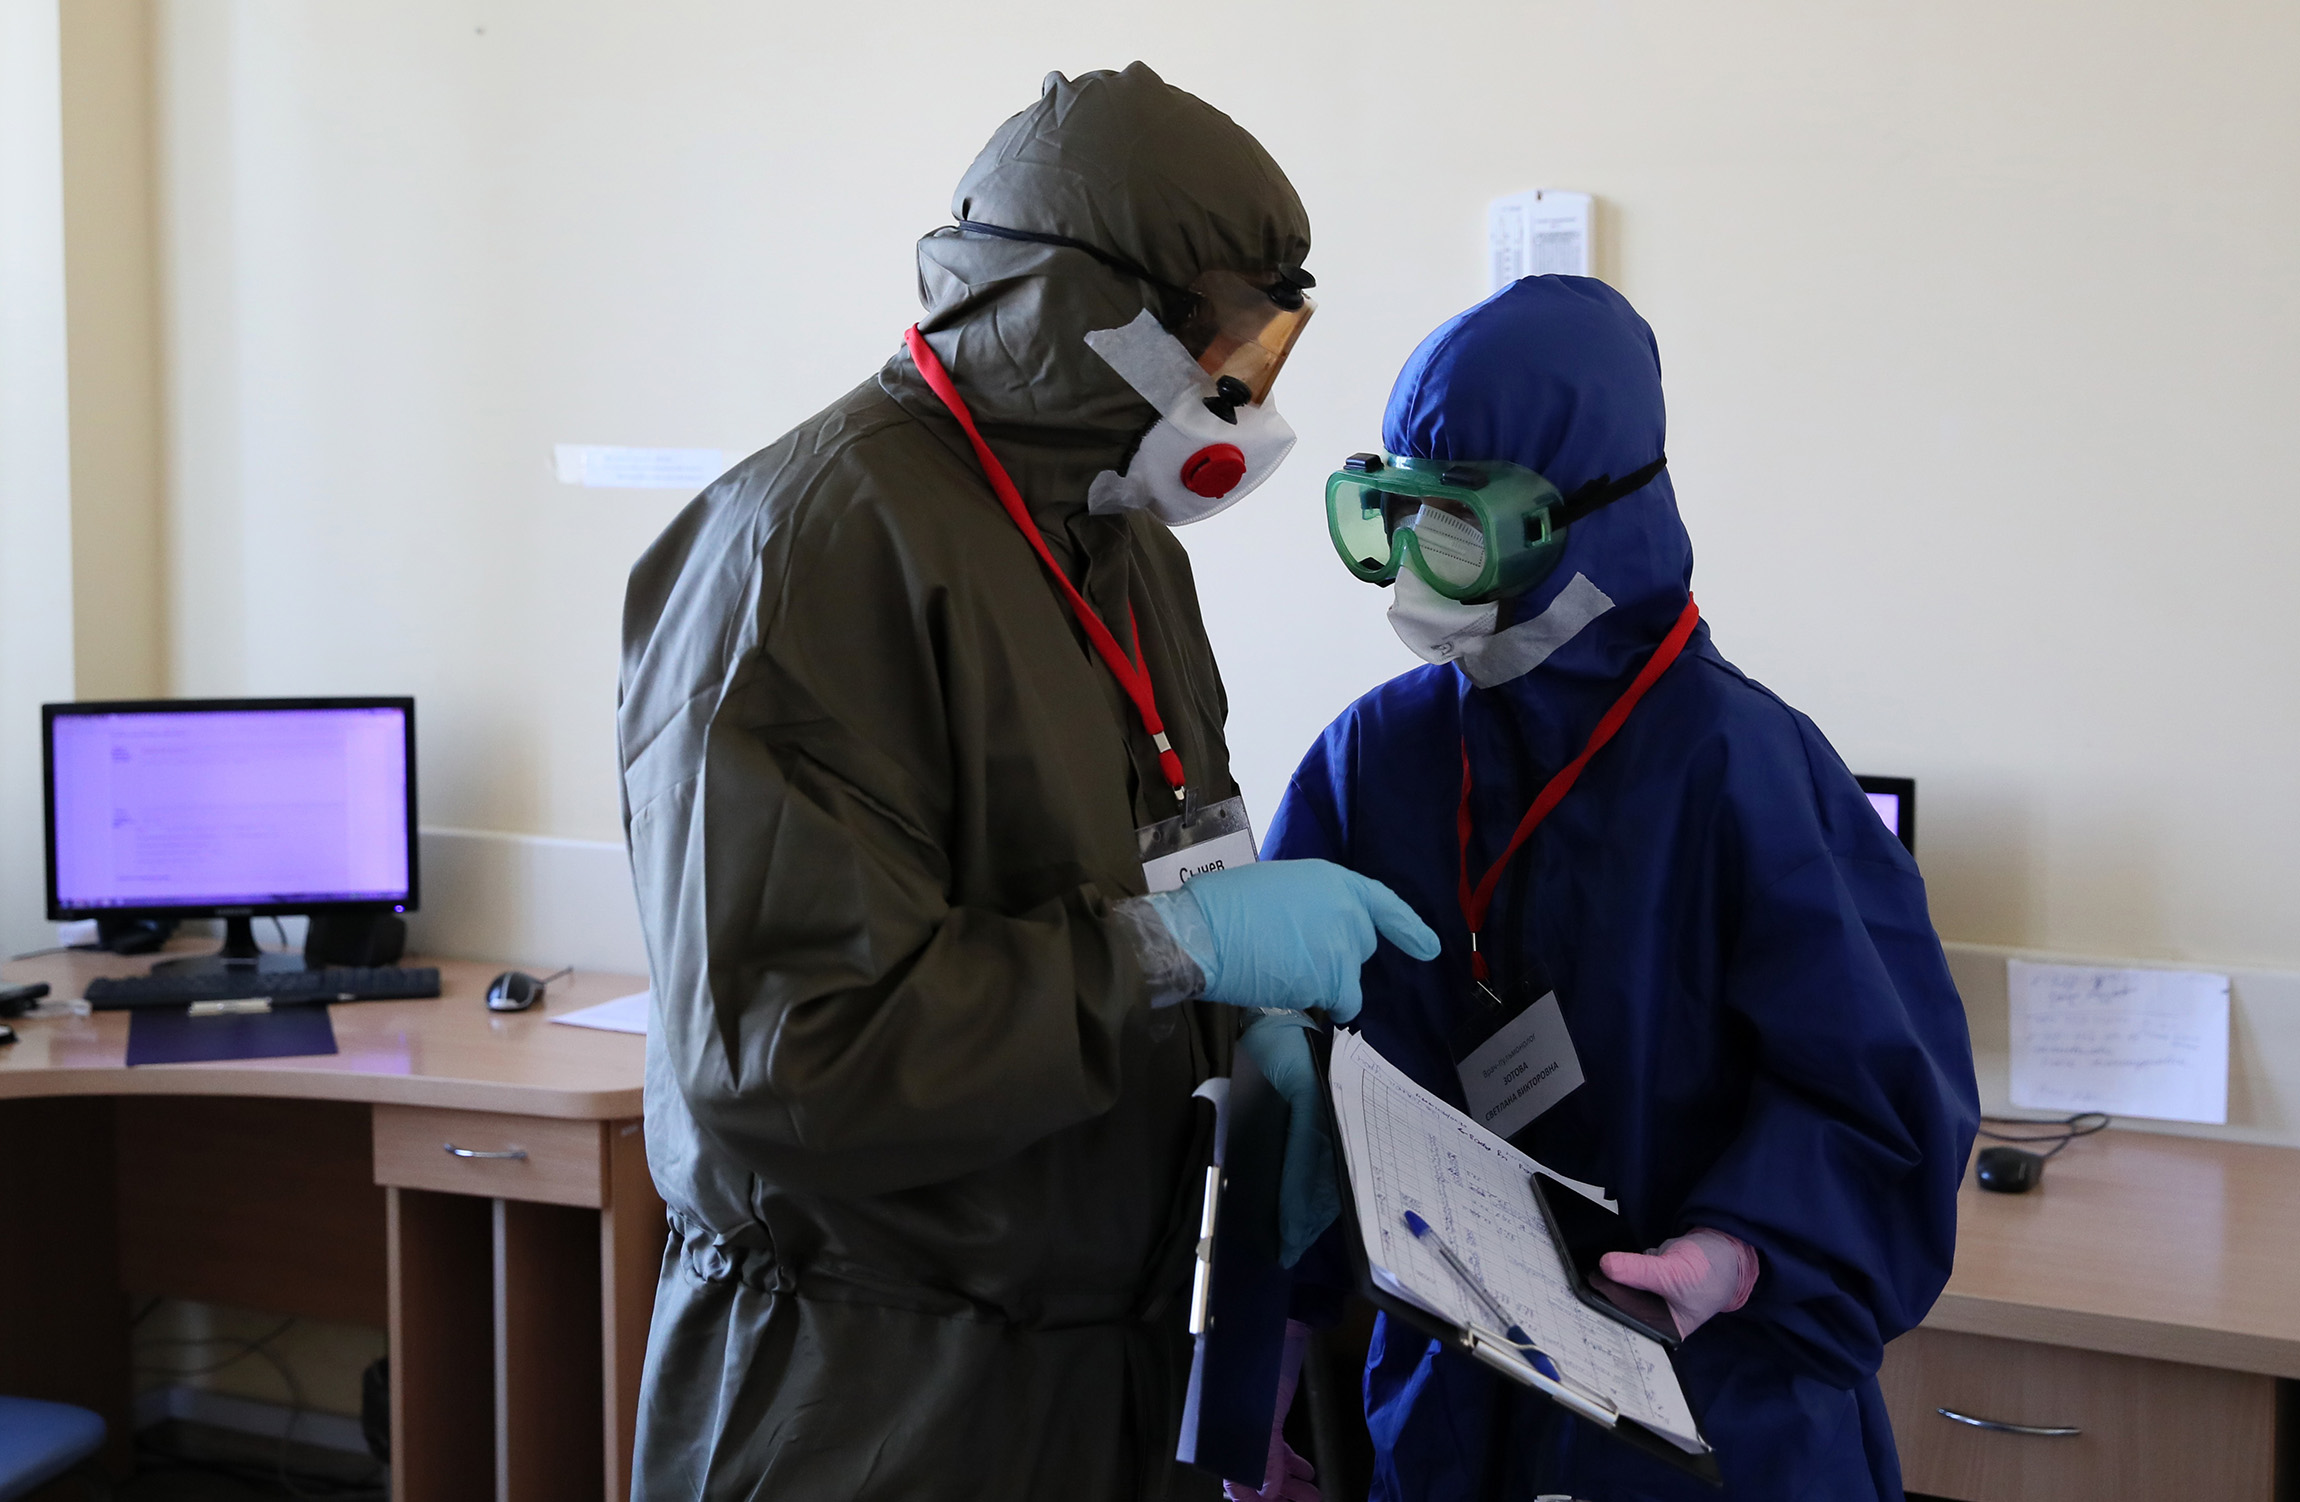 Healthcare providers are seen wearing protective gear in the Krasnodar Territory's Regional Clinical Hospital that offers treatment to COVID-19 patients on Thursday, November 5.